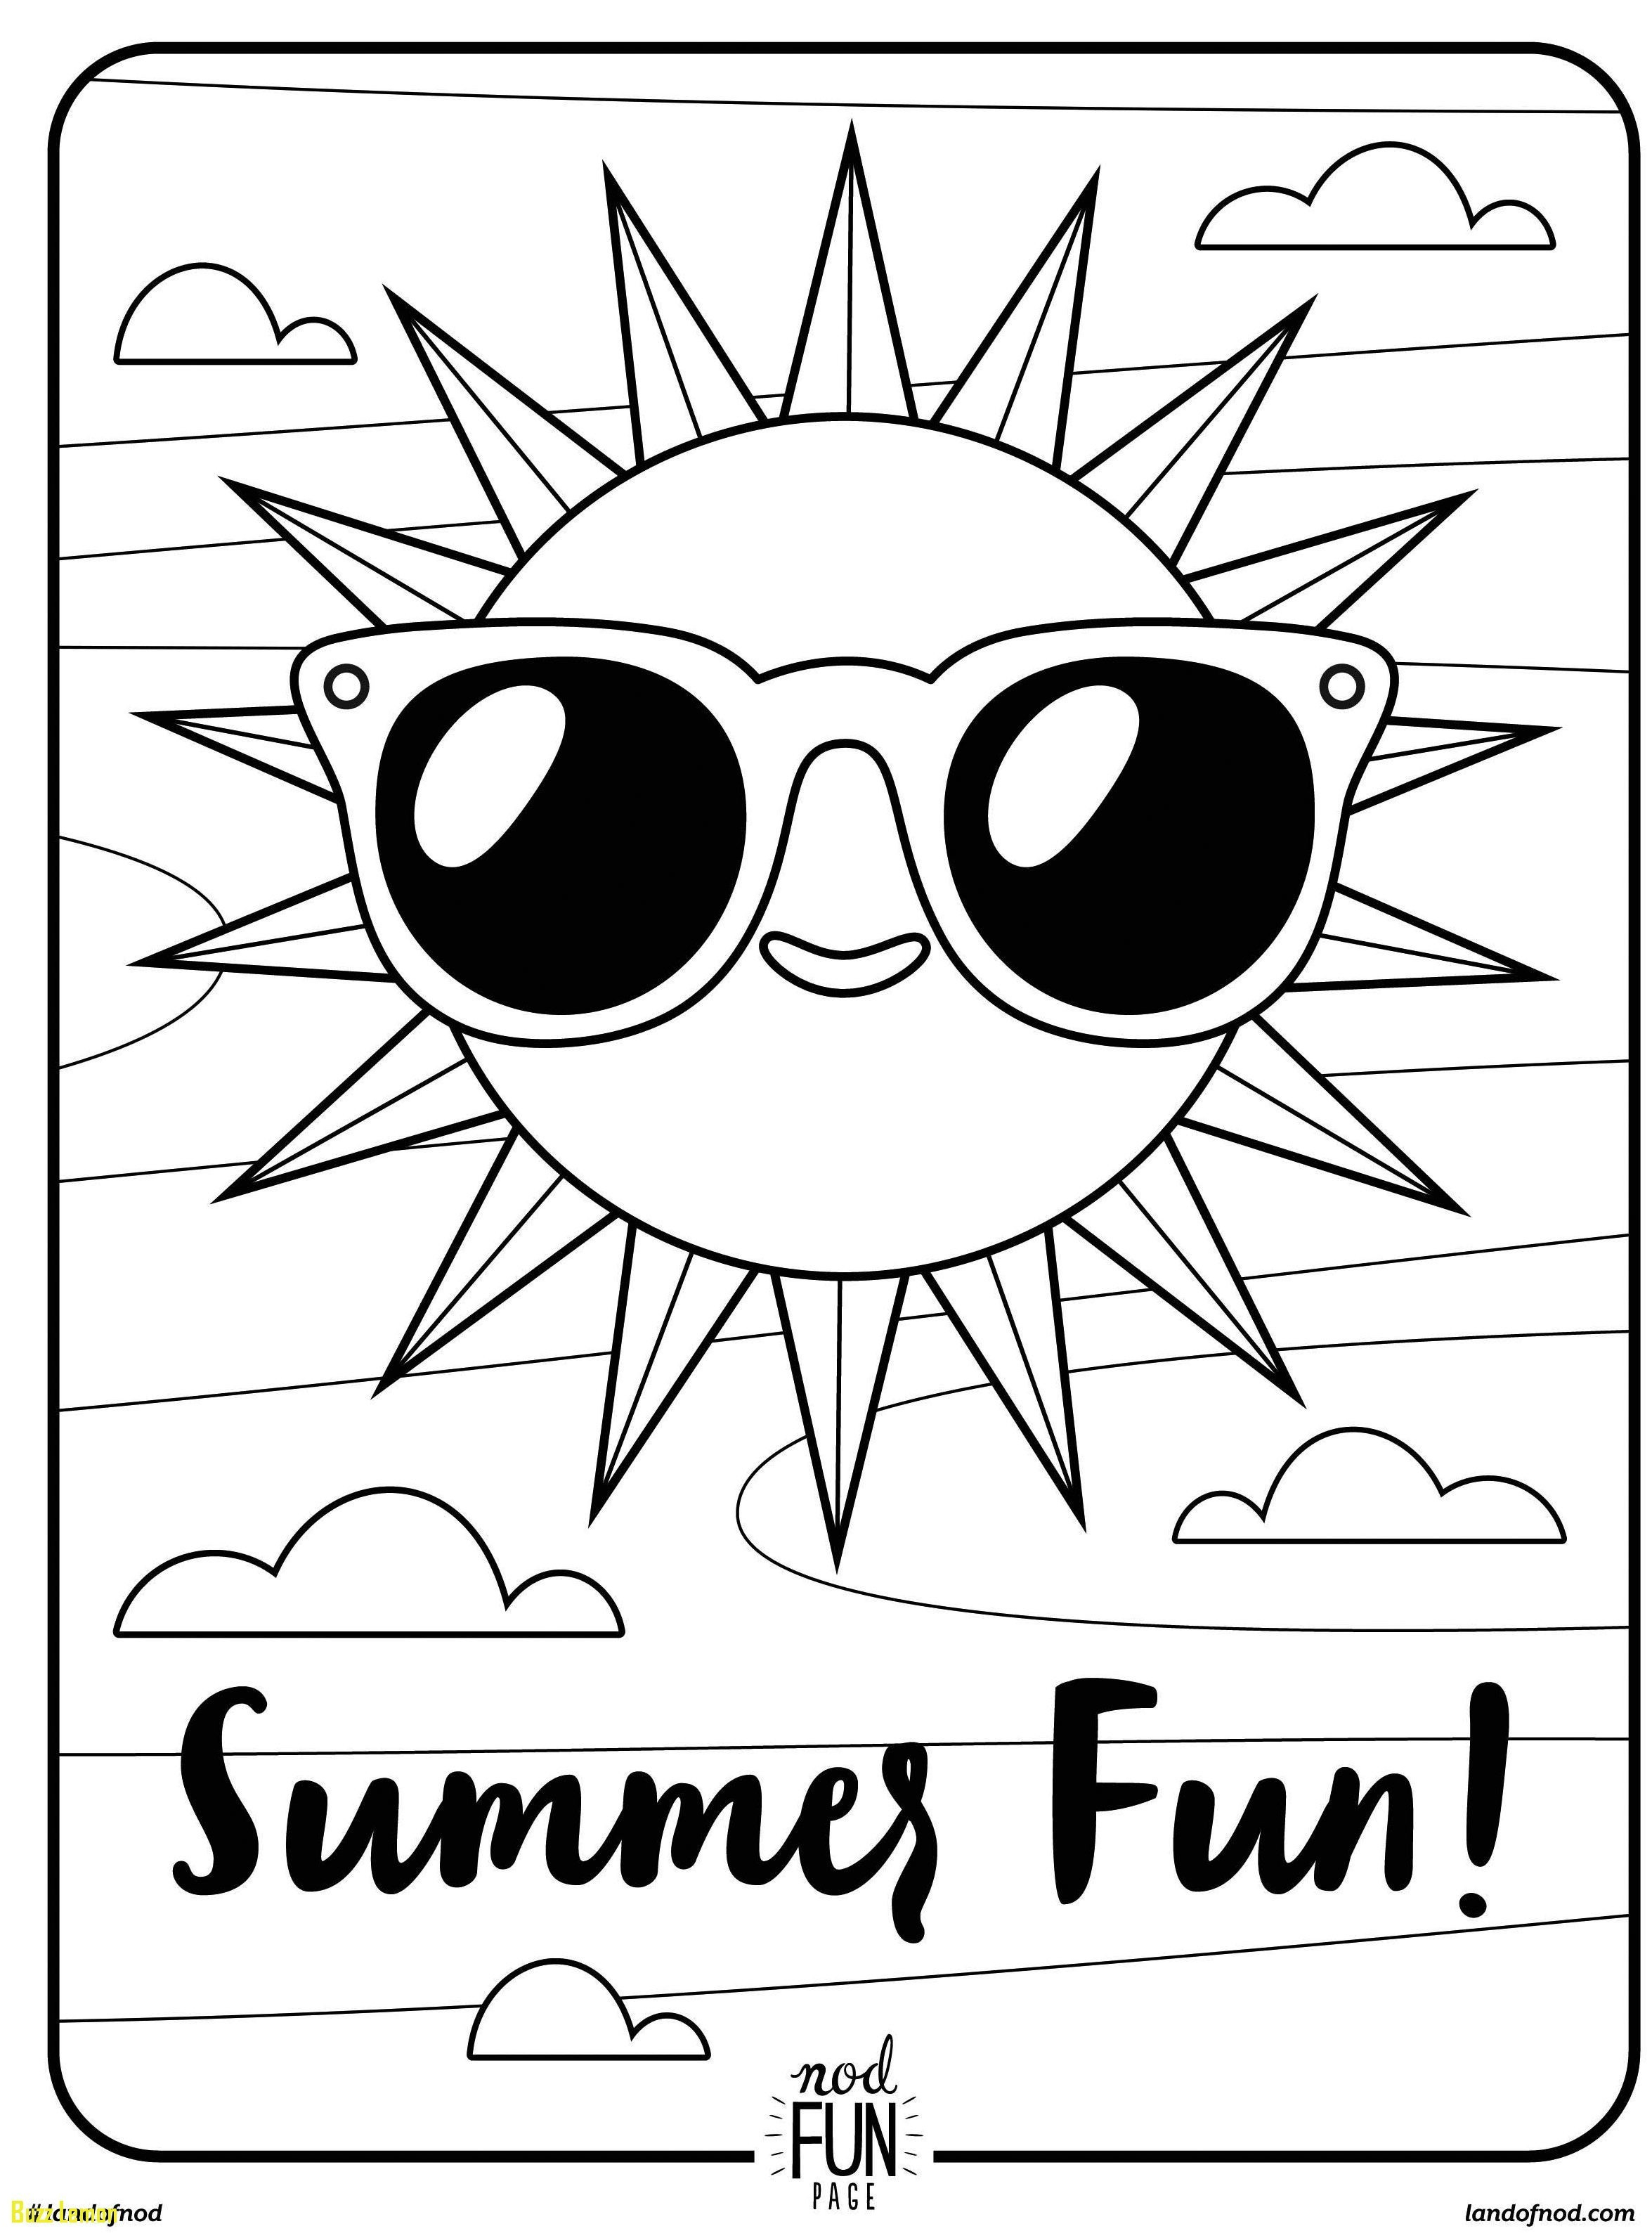 Coloring Pages : Printable Summer Coloring Pages Beach Free For - Free Printable Summer Coloring Pages